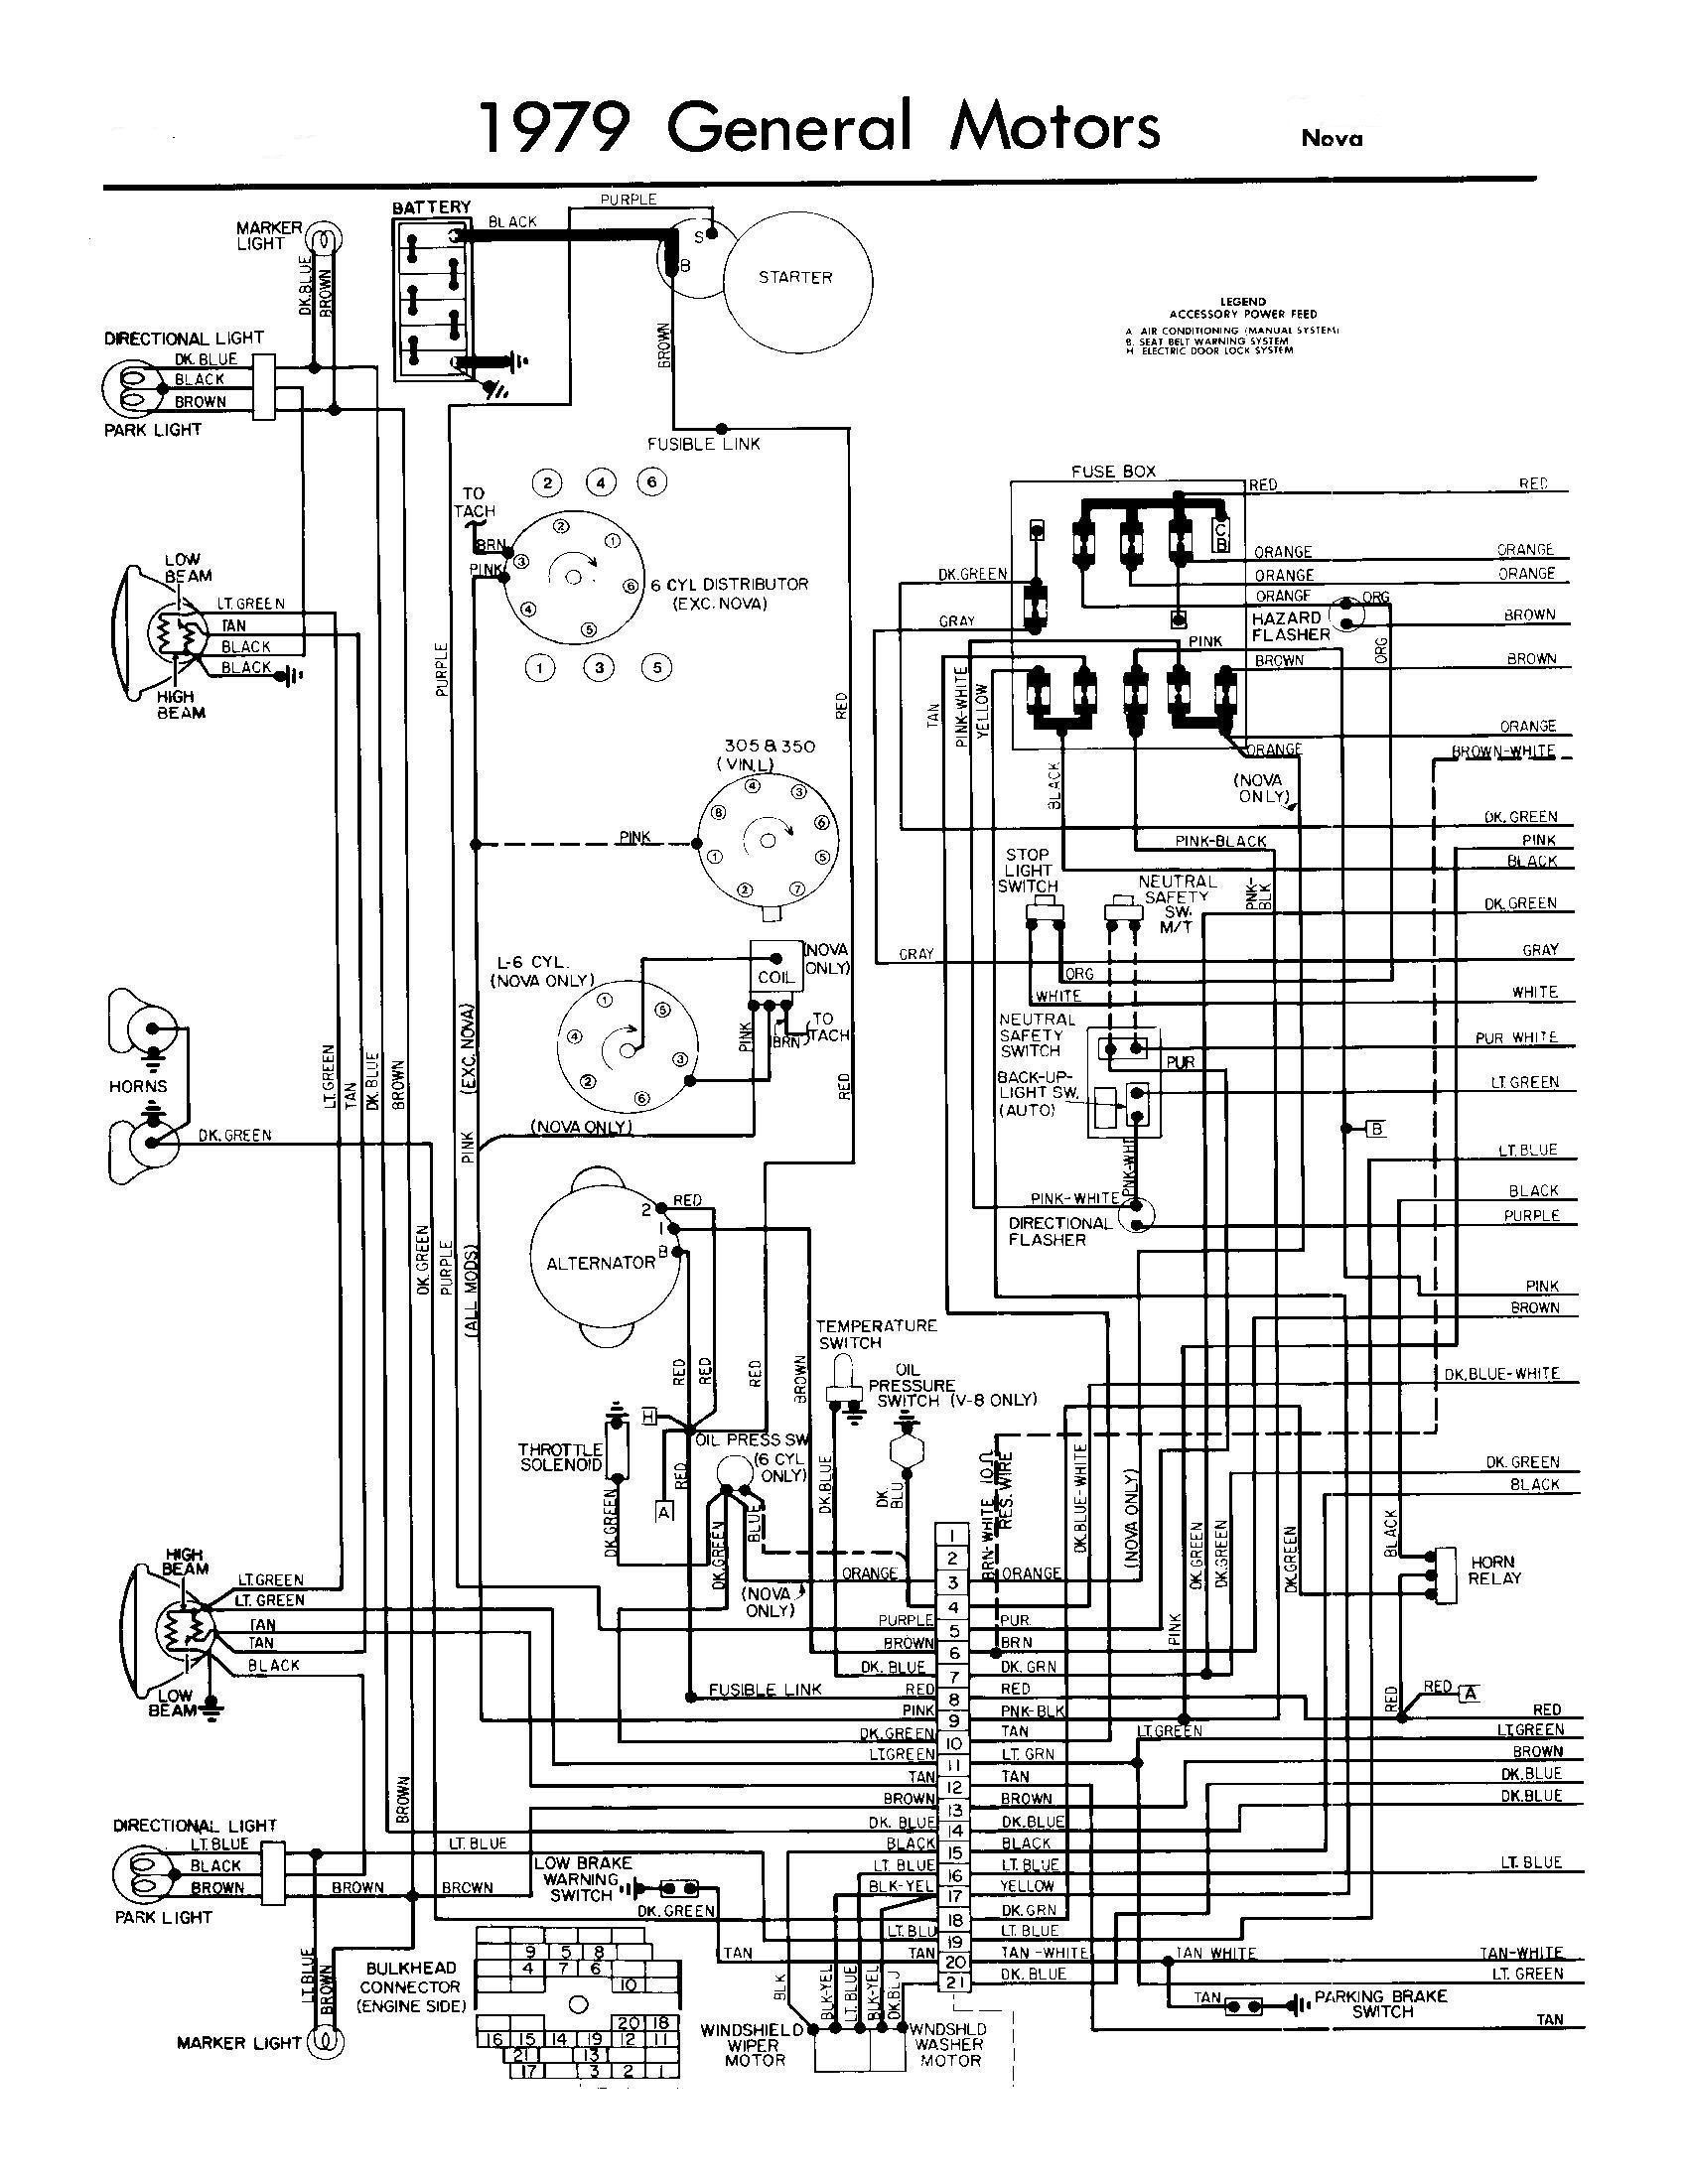 88 gmc sierra 1500 wiring harness diagram trusted wiring diagram rh dafpods co 1988 gmc sierra 1500 radio wiring diagram 1998 gmc sierra 1500 wiring diagram